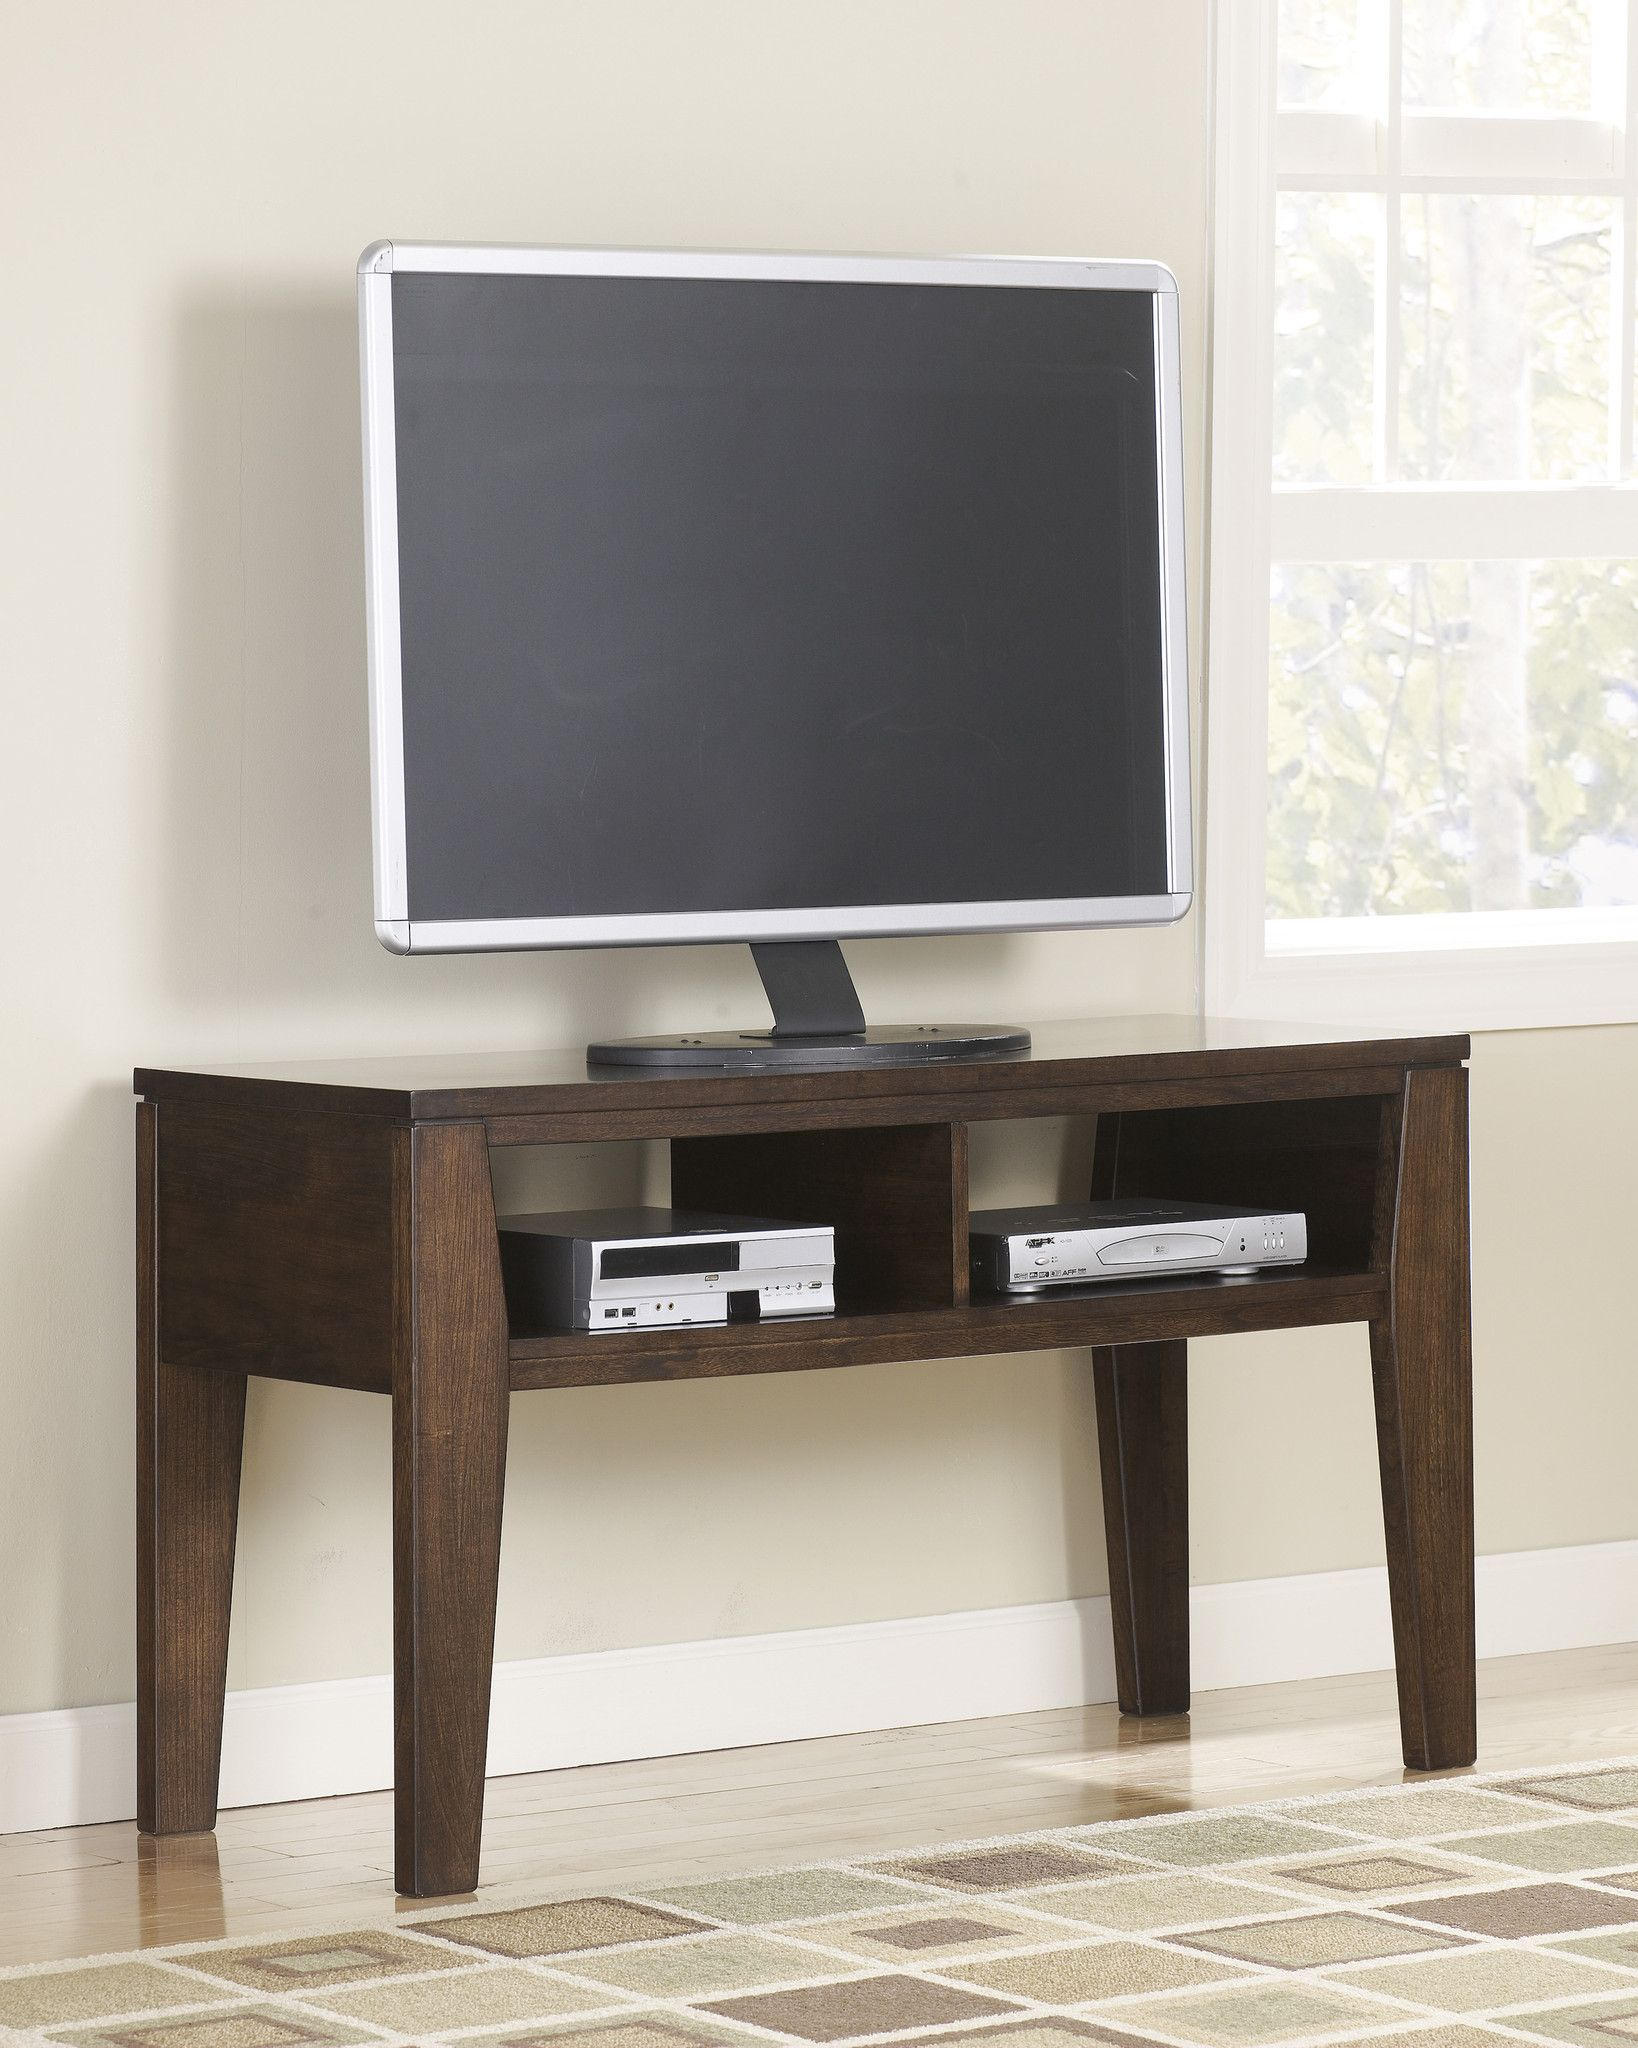 Deagan TV Stand TV units Pinterest TVs Furniture and